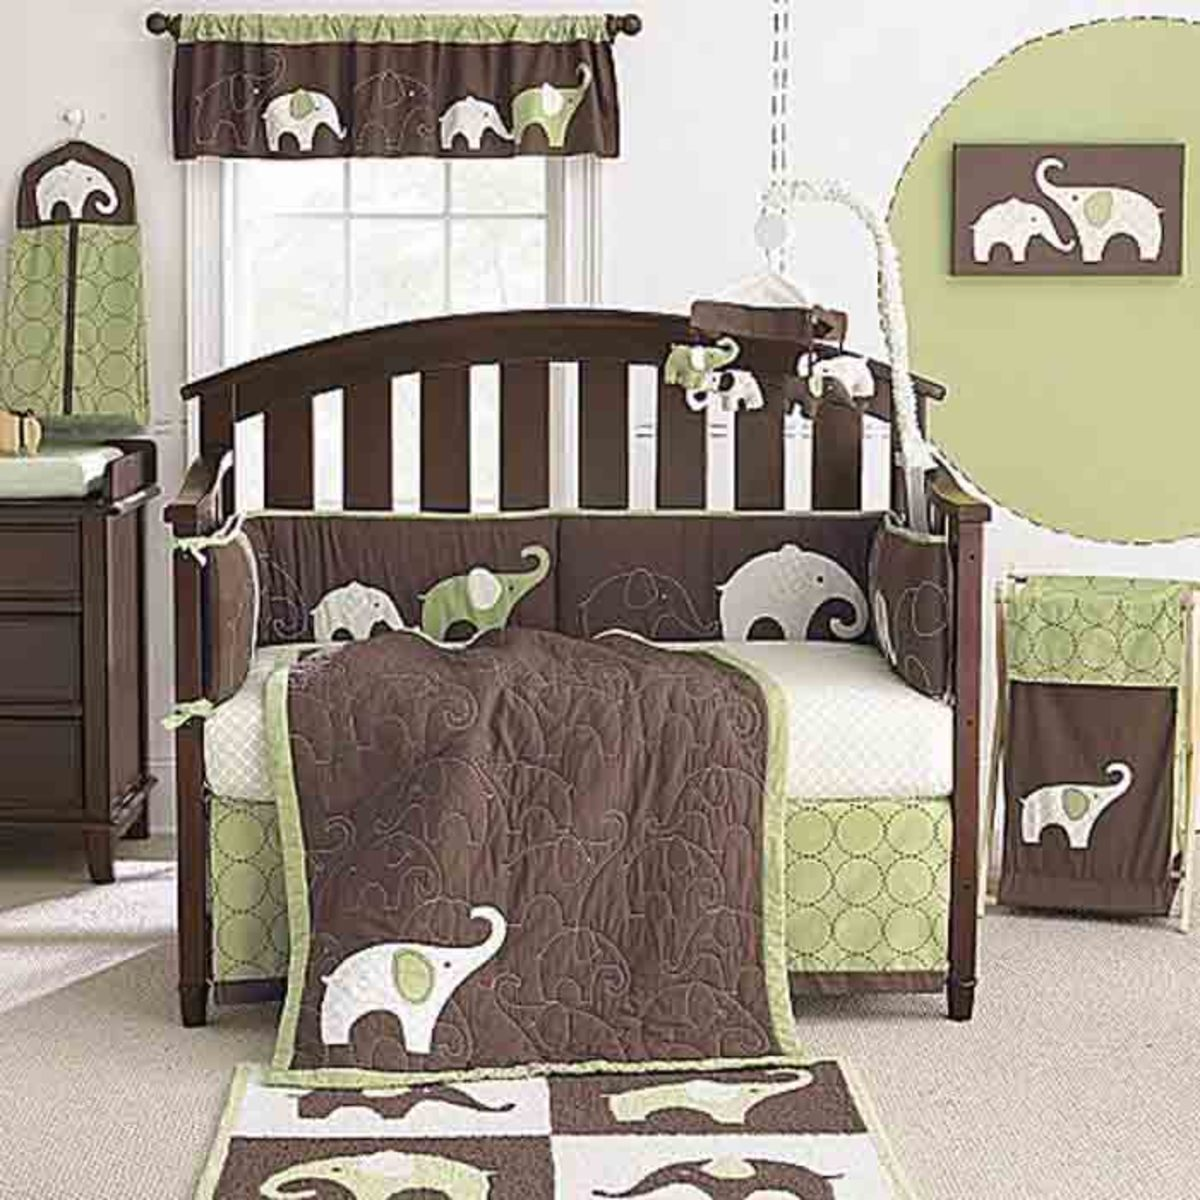 Ideas For Baby Room Decorating Ideas For A Baby Boy Nursery